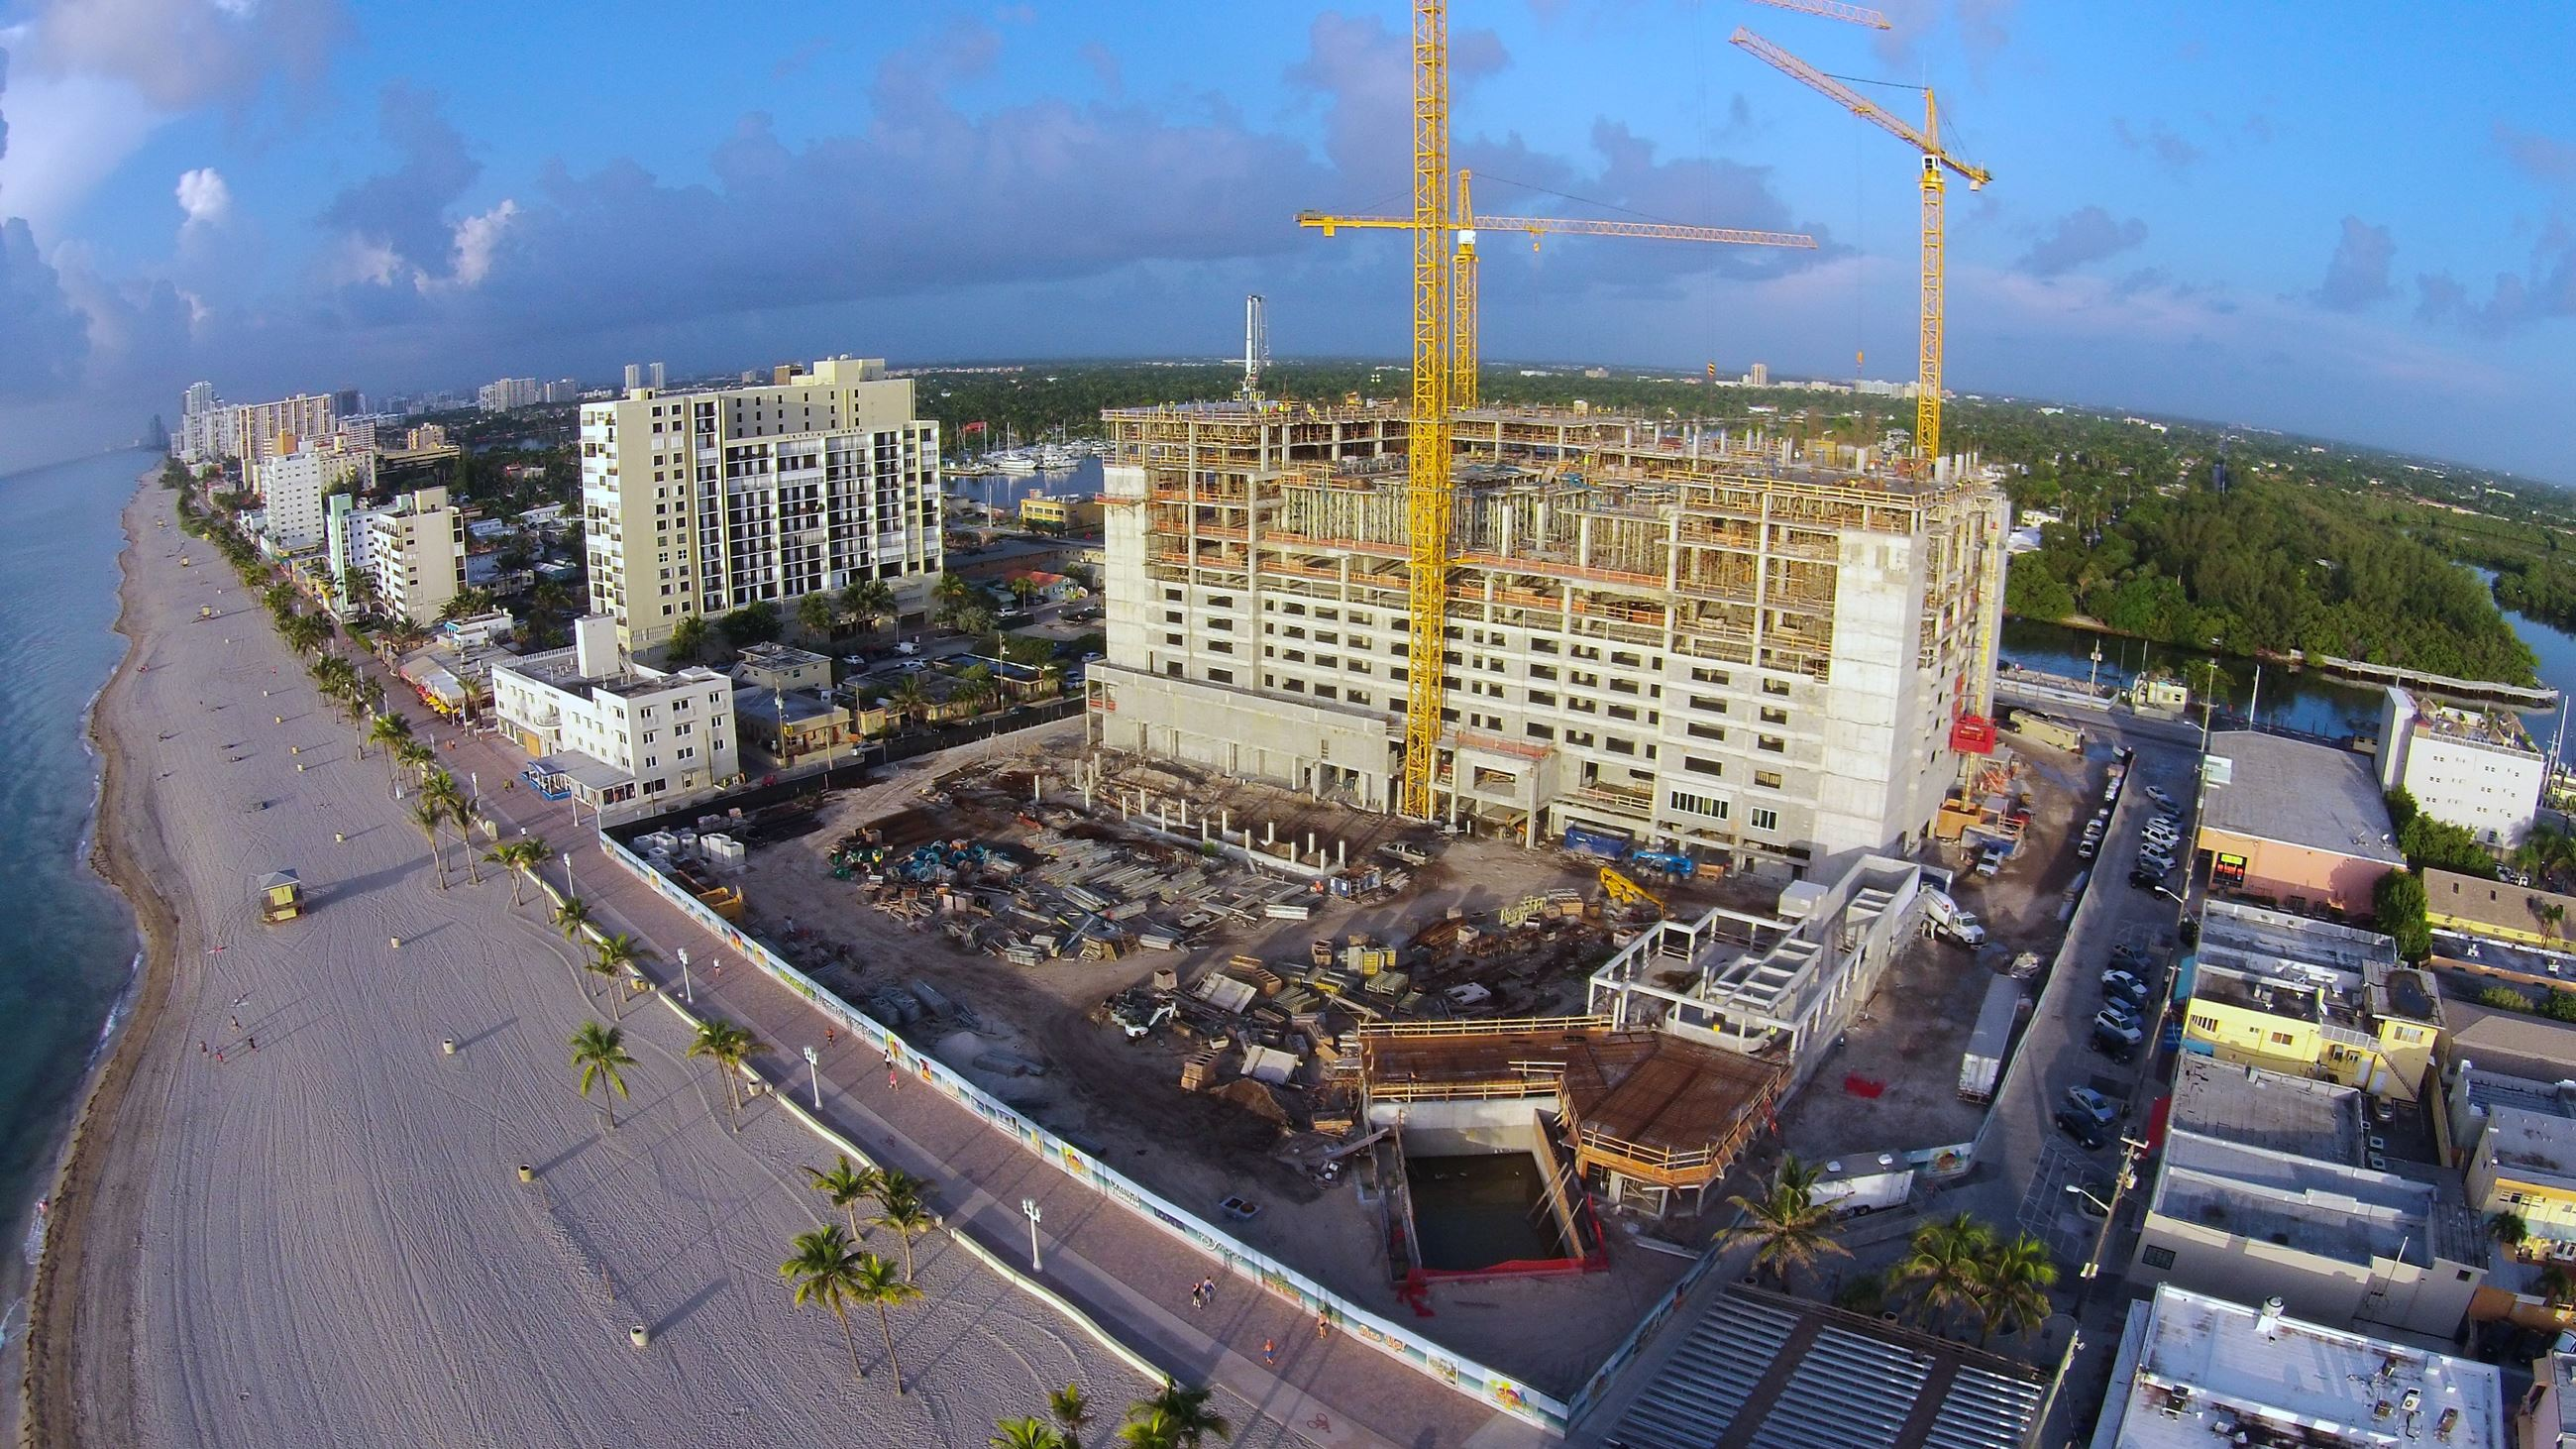 Margaritaville Construction Phase